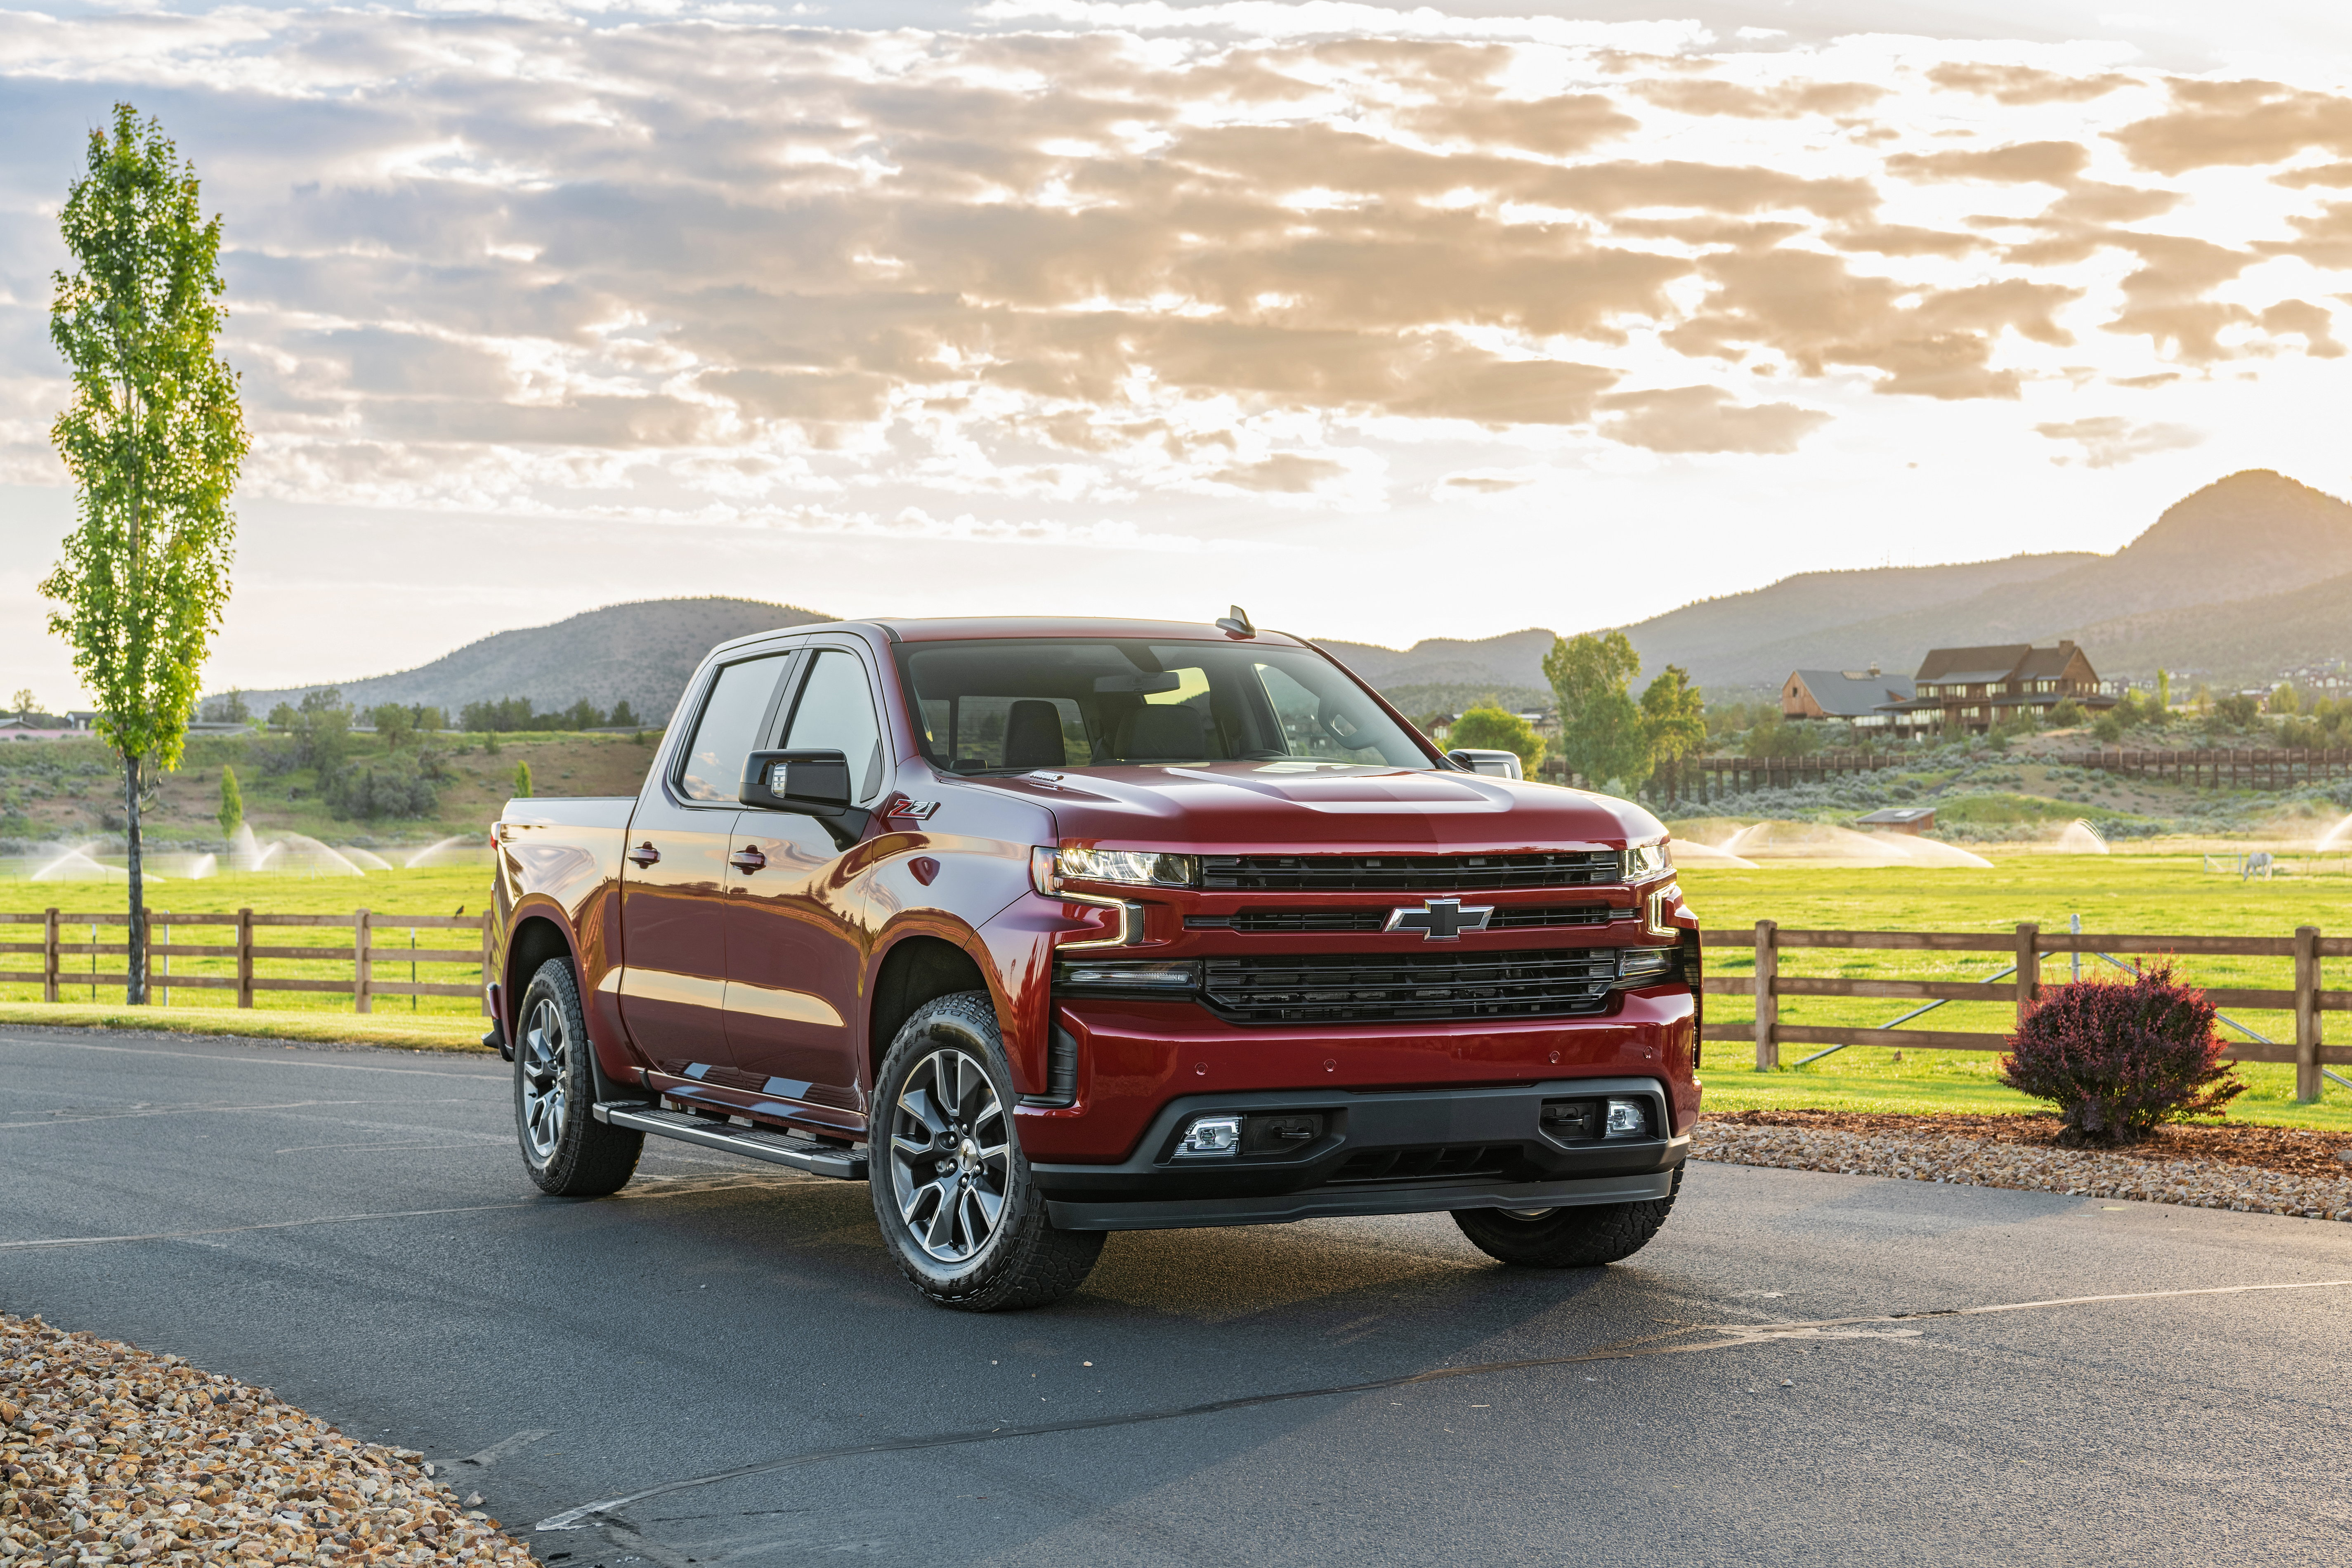 2020 Chevrolet Silverado 3 0l Duramax Delivers Epa Estimated 33 Miles Per Gallon Highway